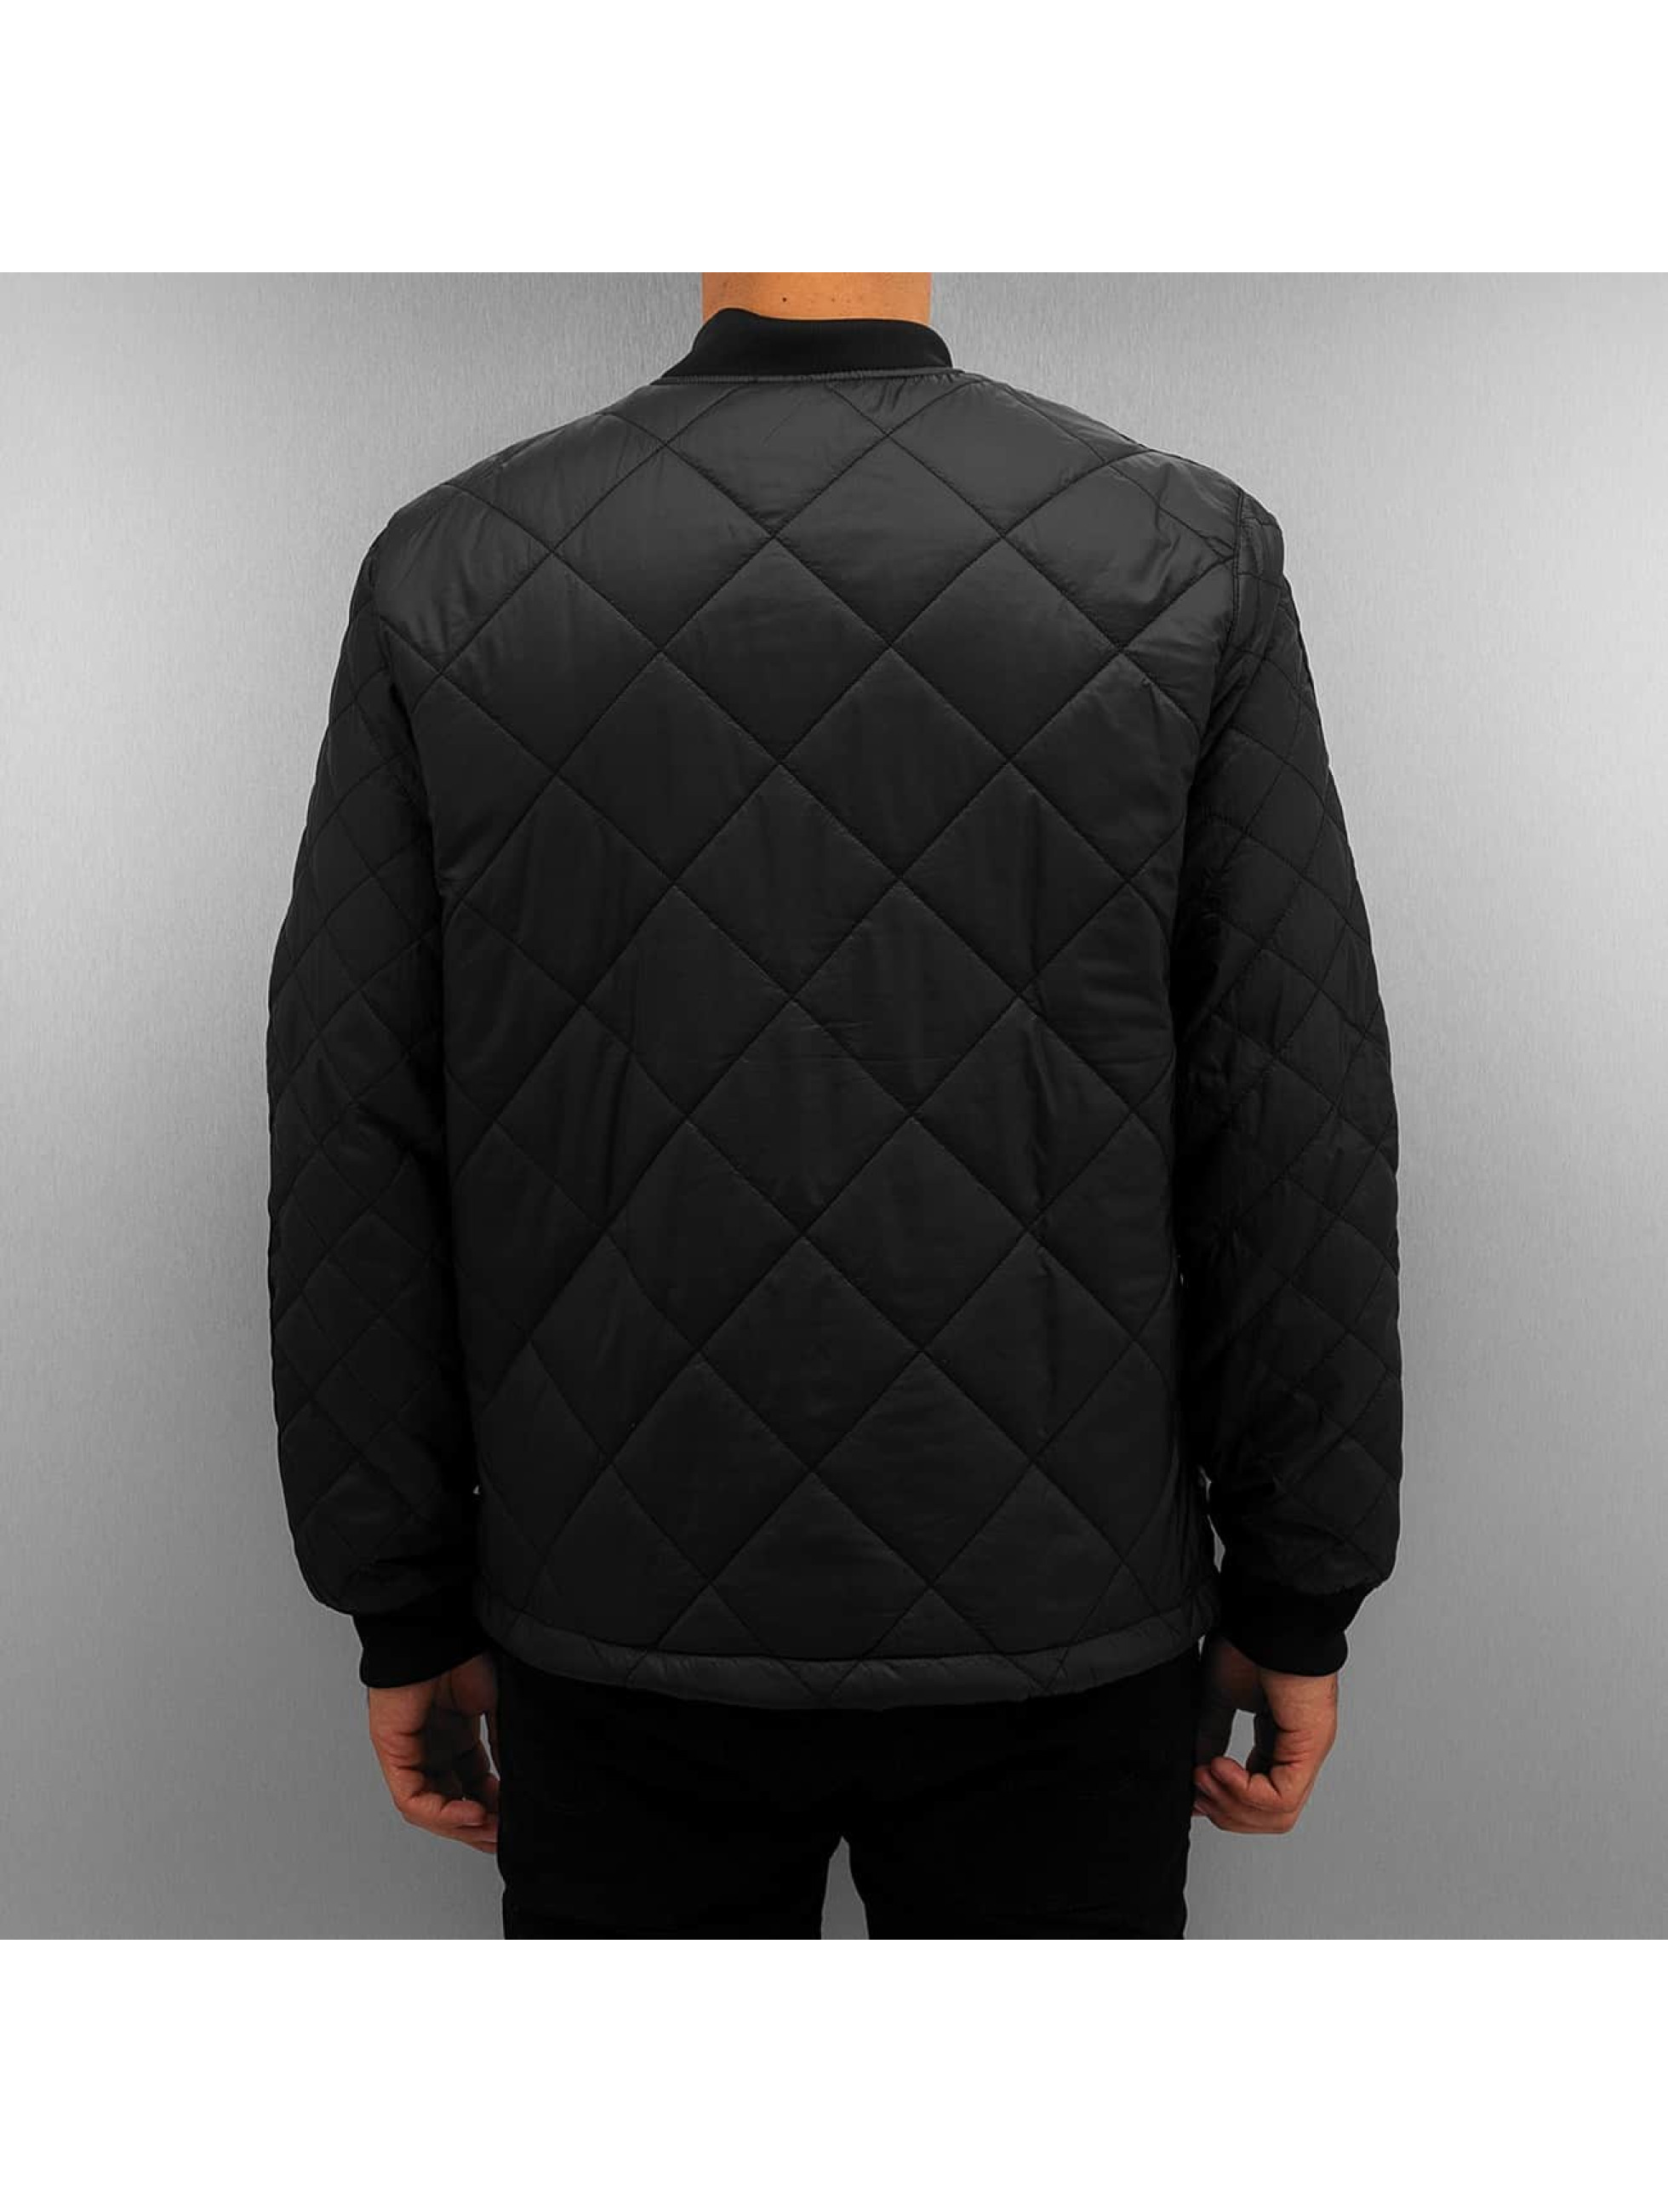 adidas Giacca Mezza Stagione Quilted Superstar nero